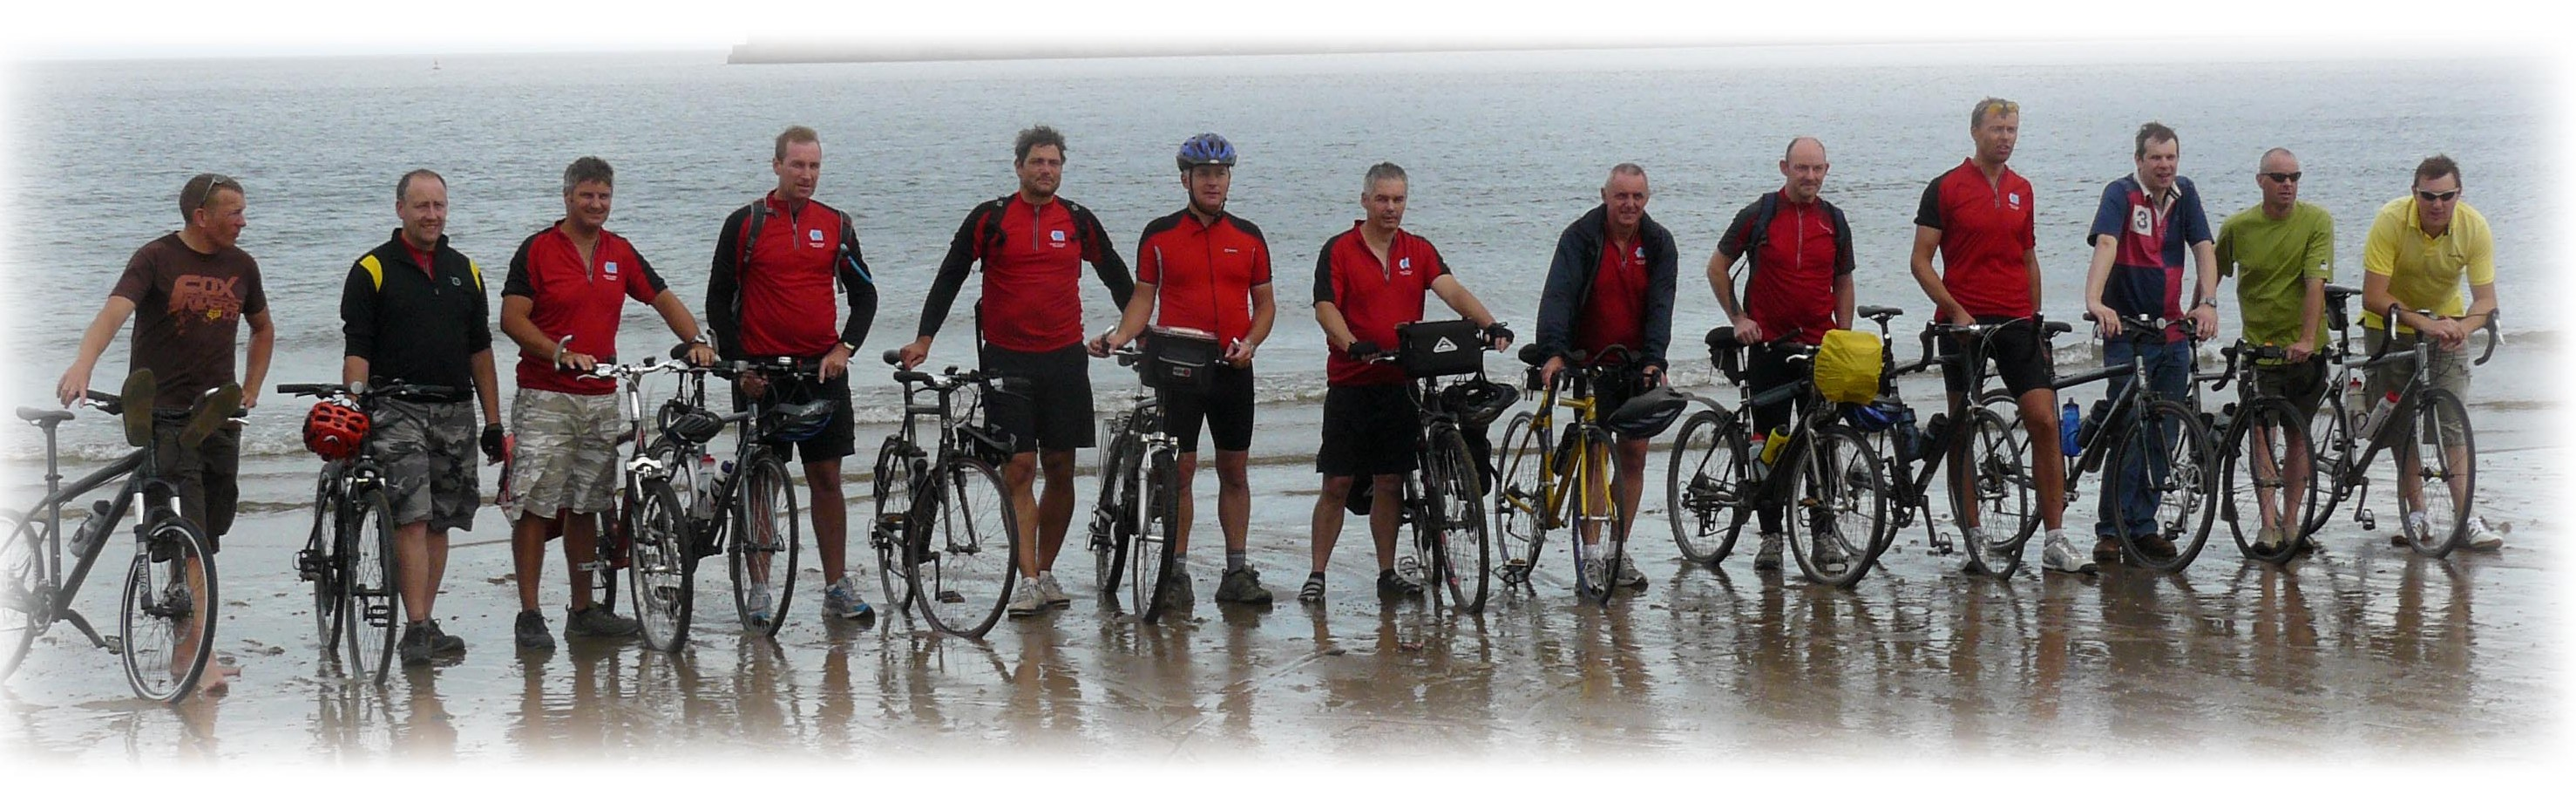 The team reach Sunderland